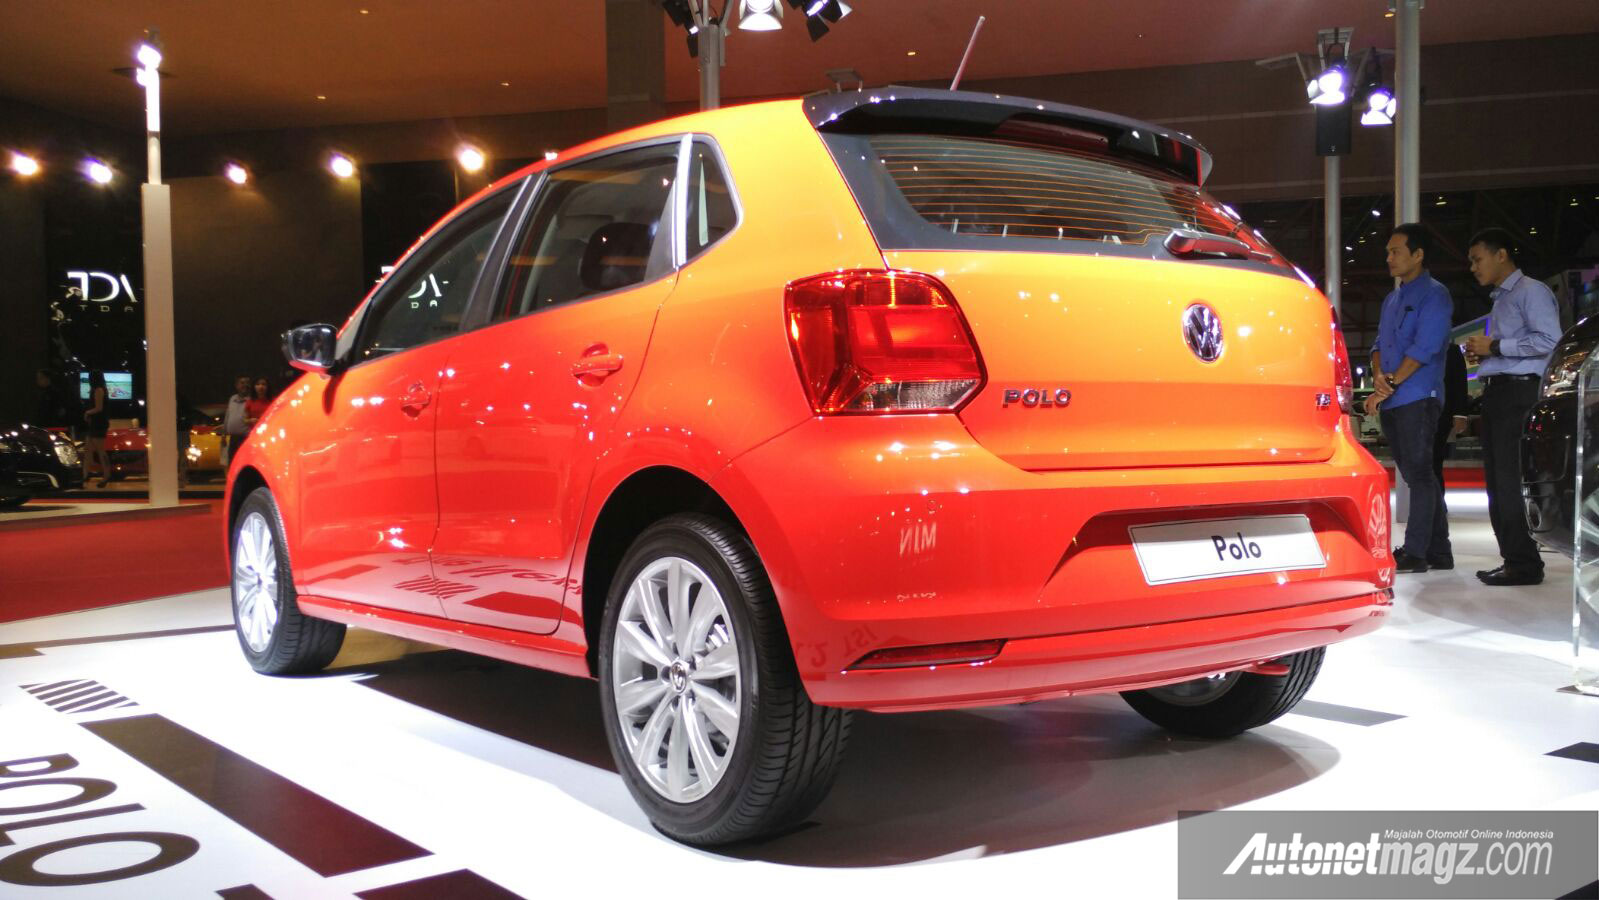 VW-Polo-1200-cc-Turbo